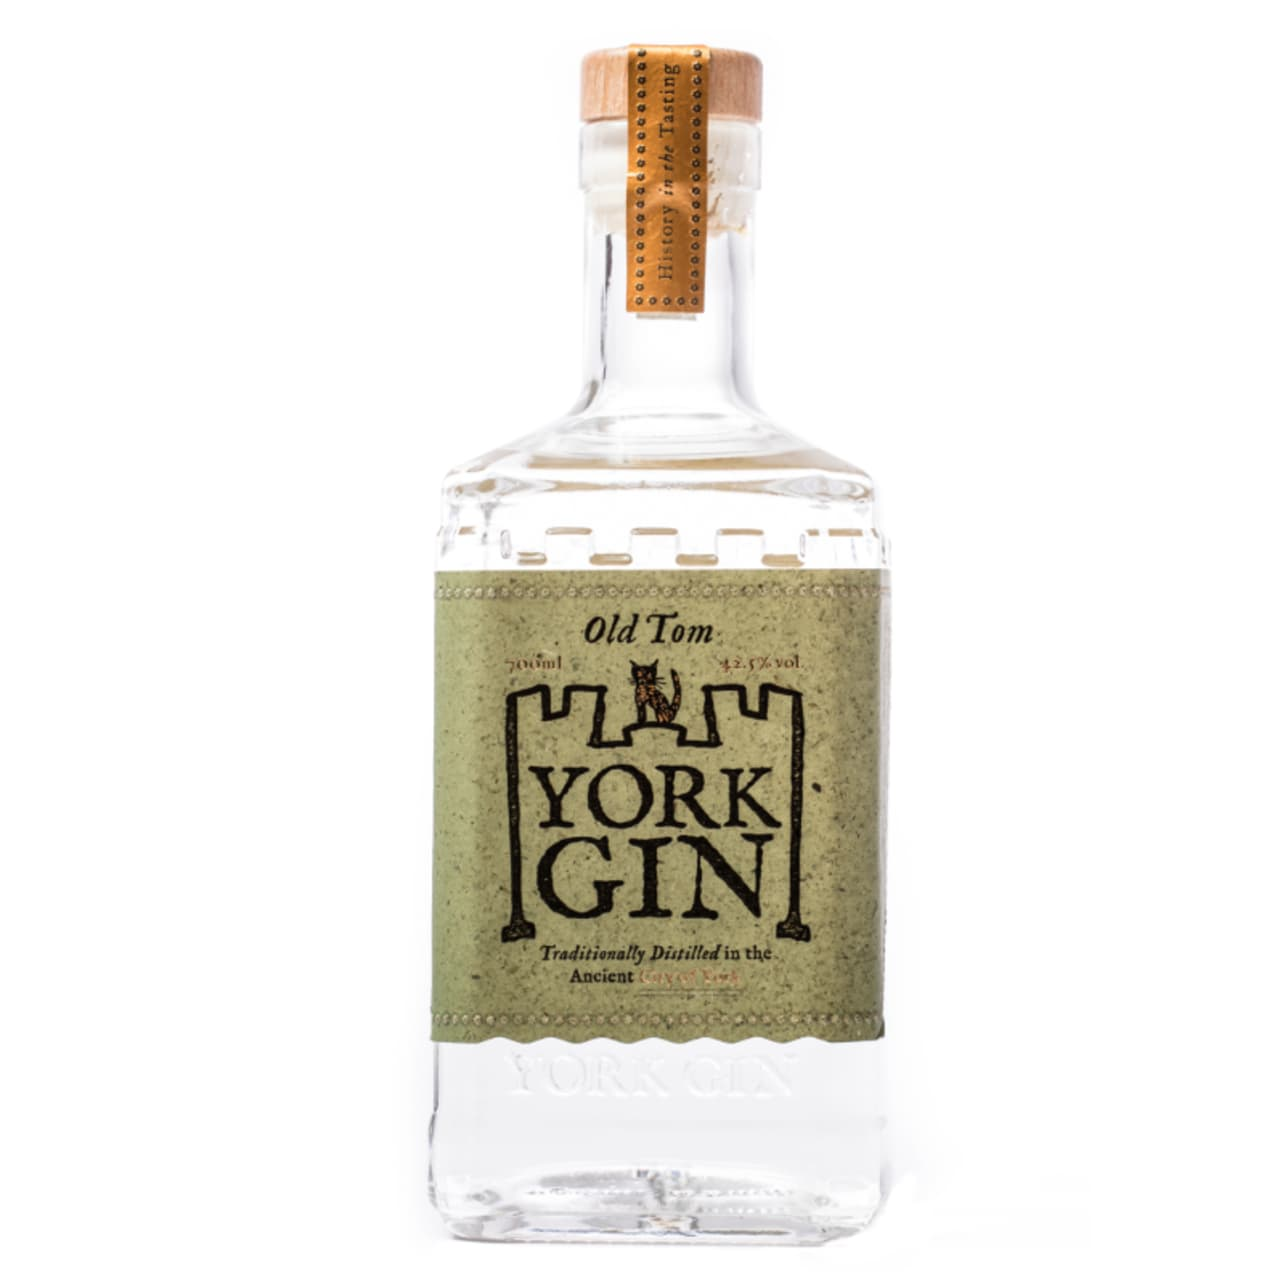 Product Image - York Gin Old Tom